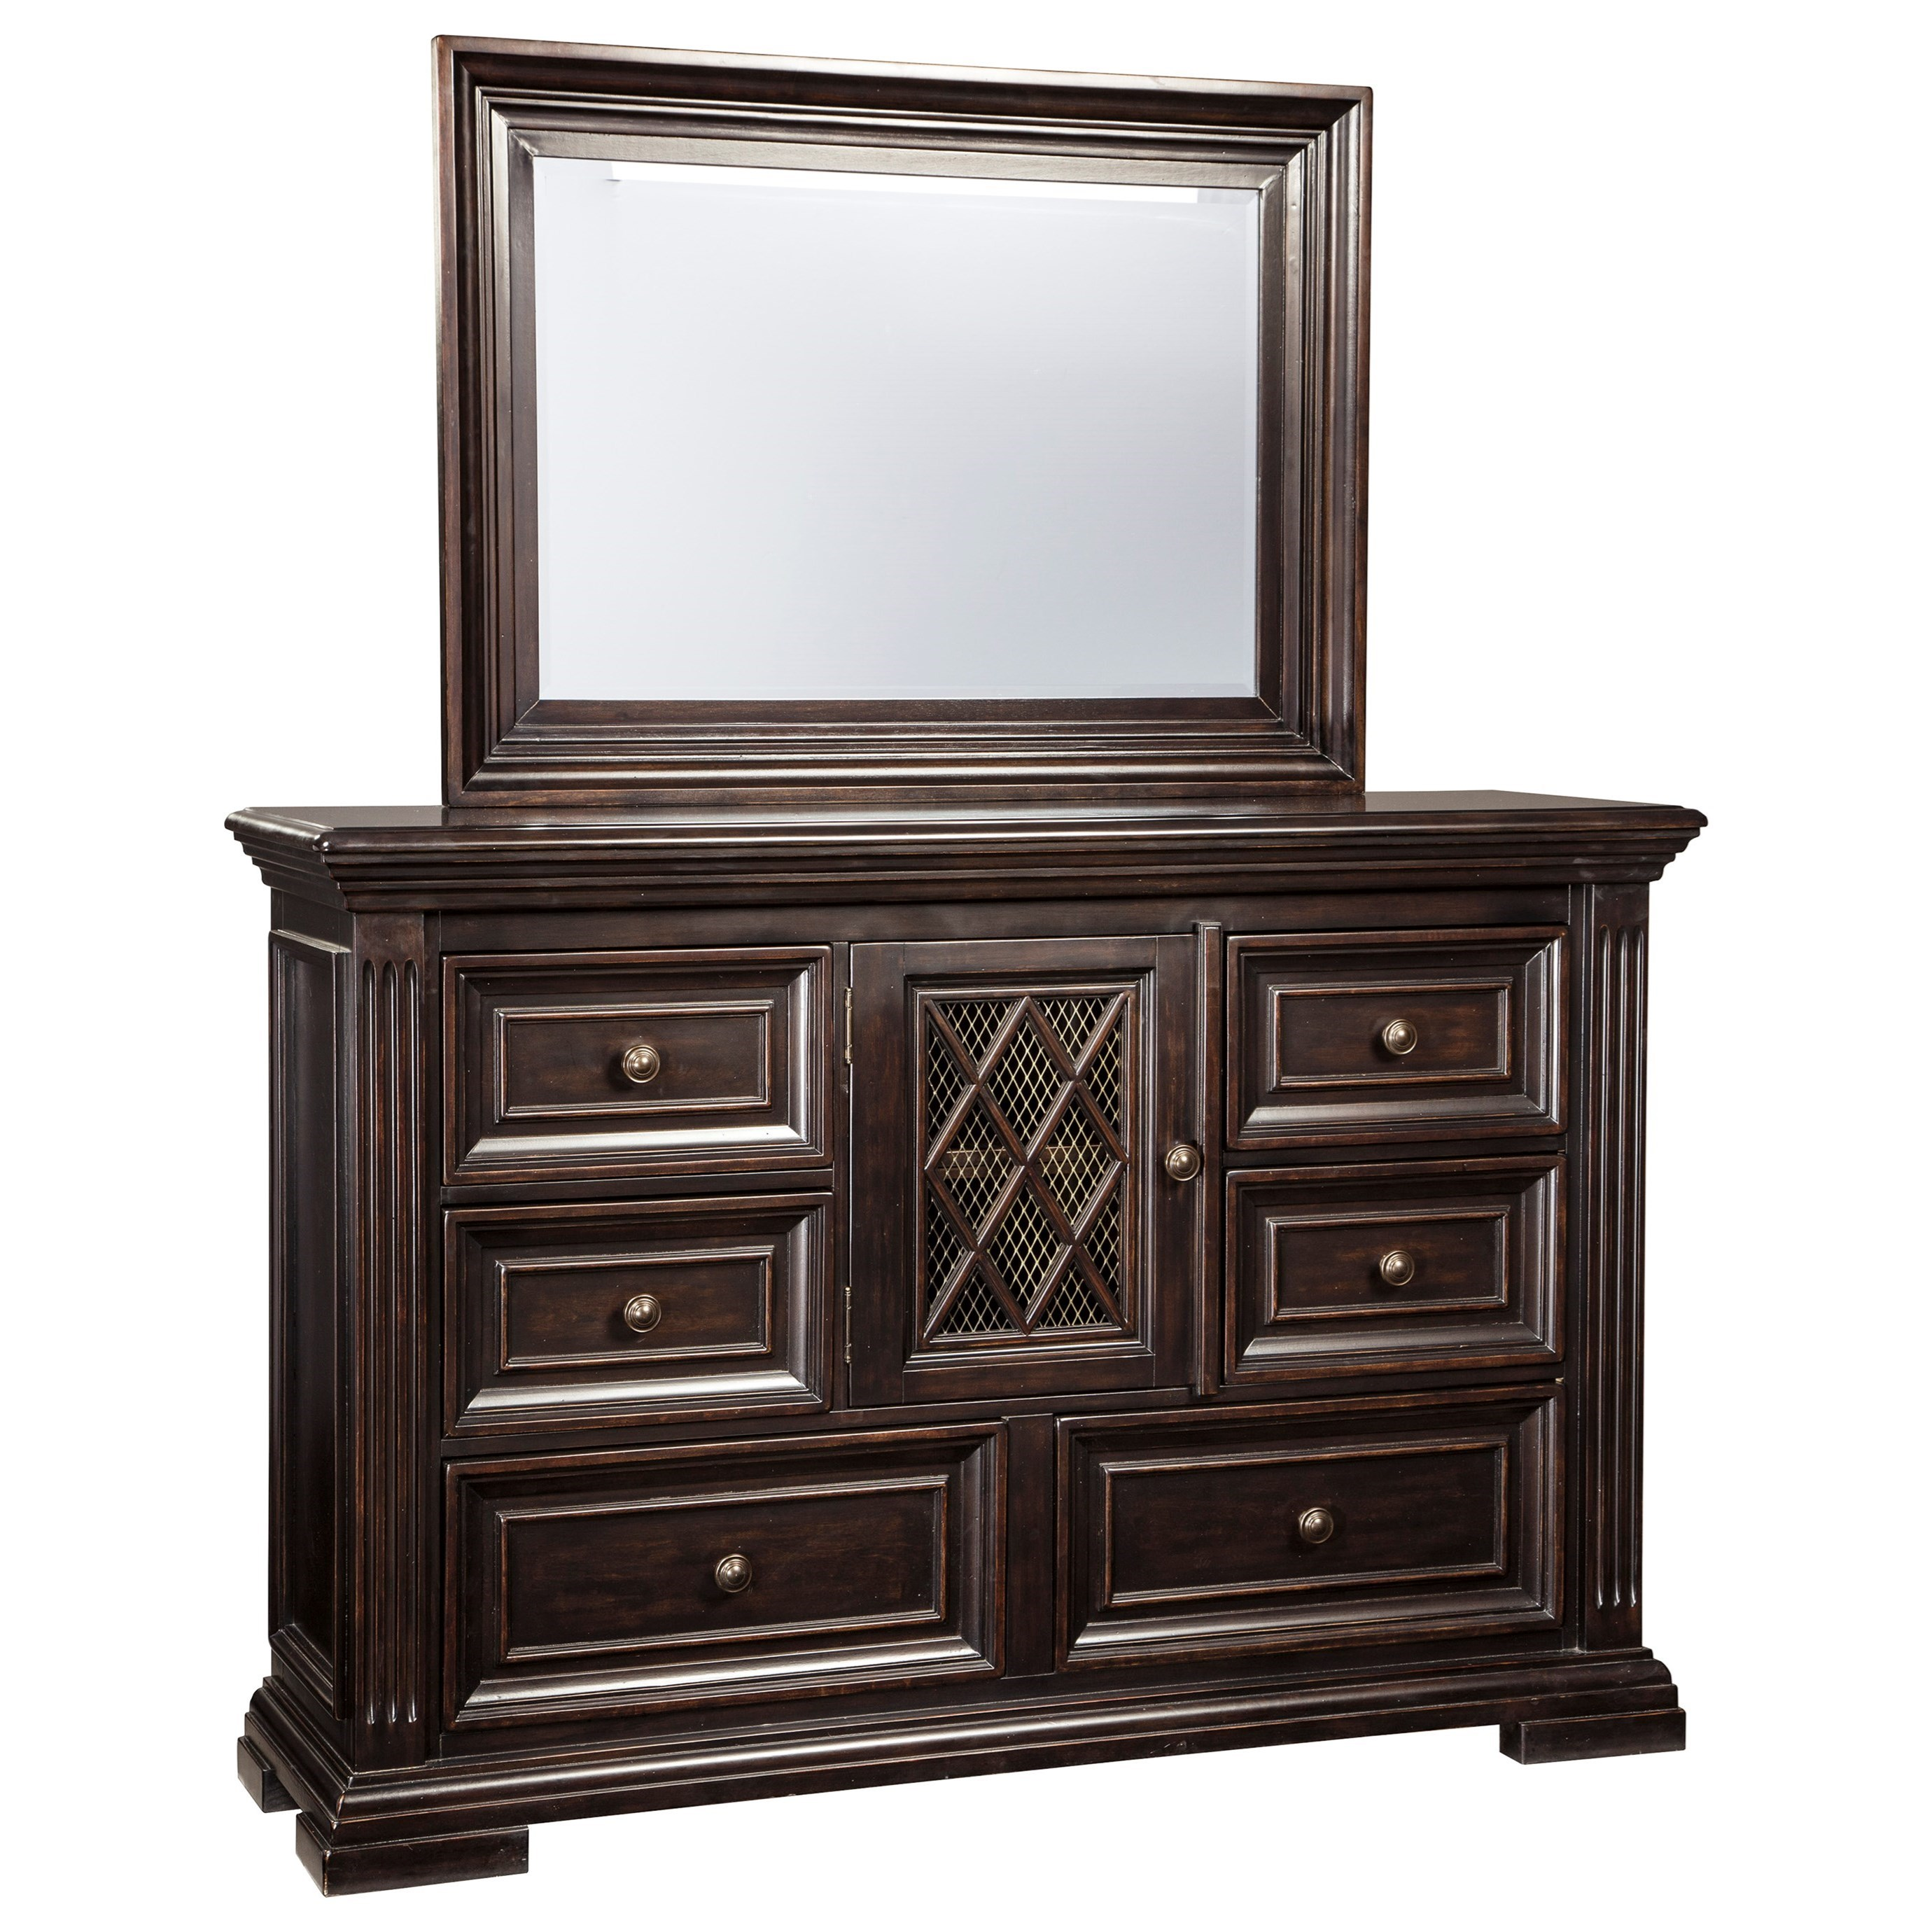 Signature Design by Ashley Willenburg Transitional Bedroom